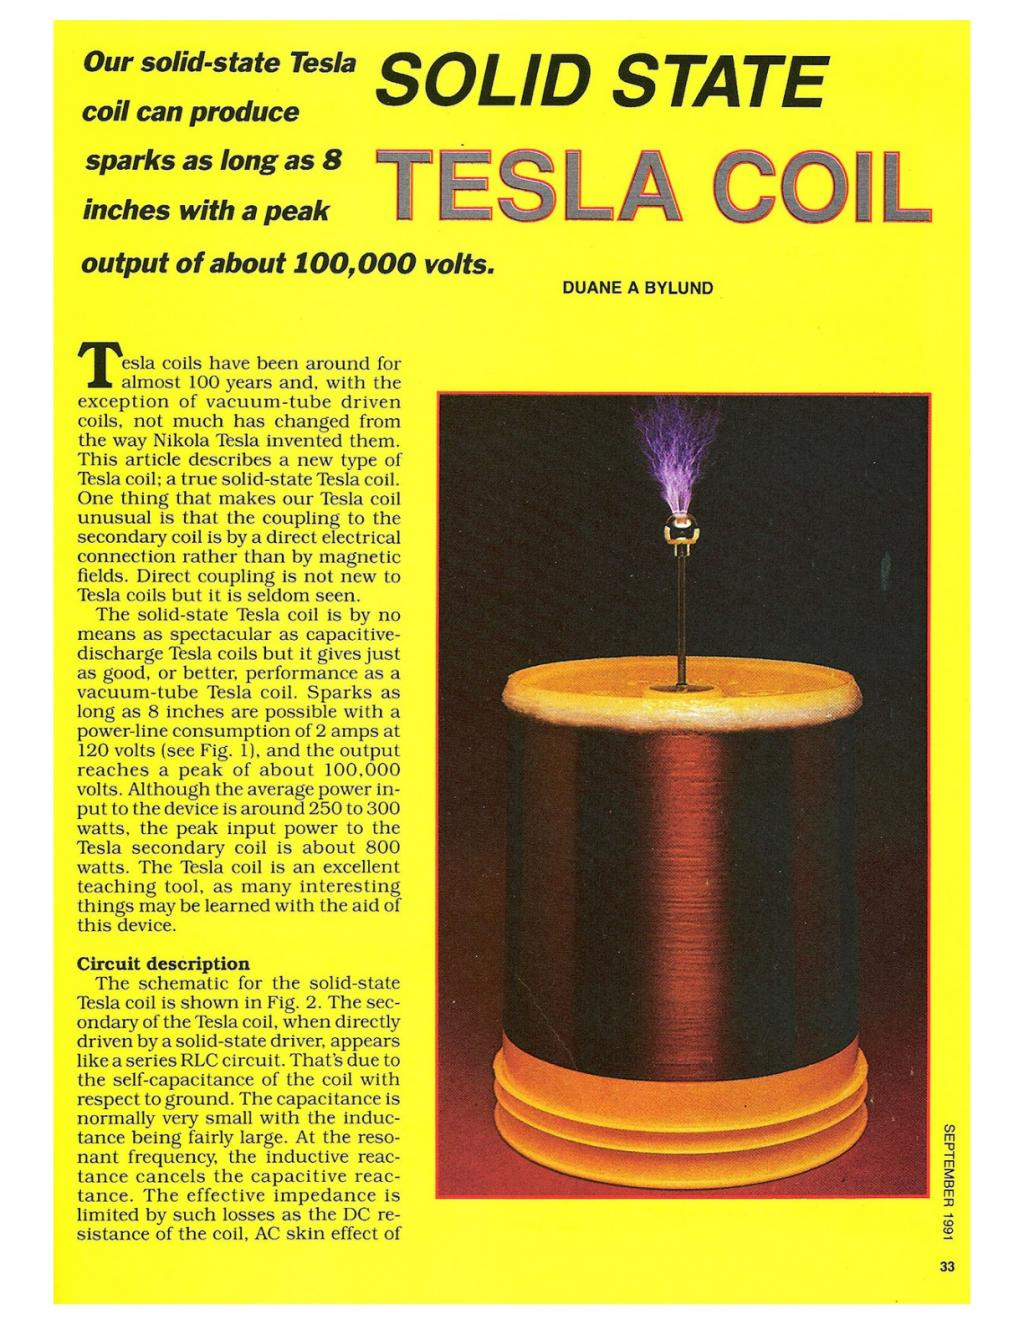 Preview of Solid State Tesla Coil plan